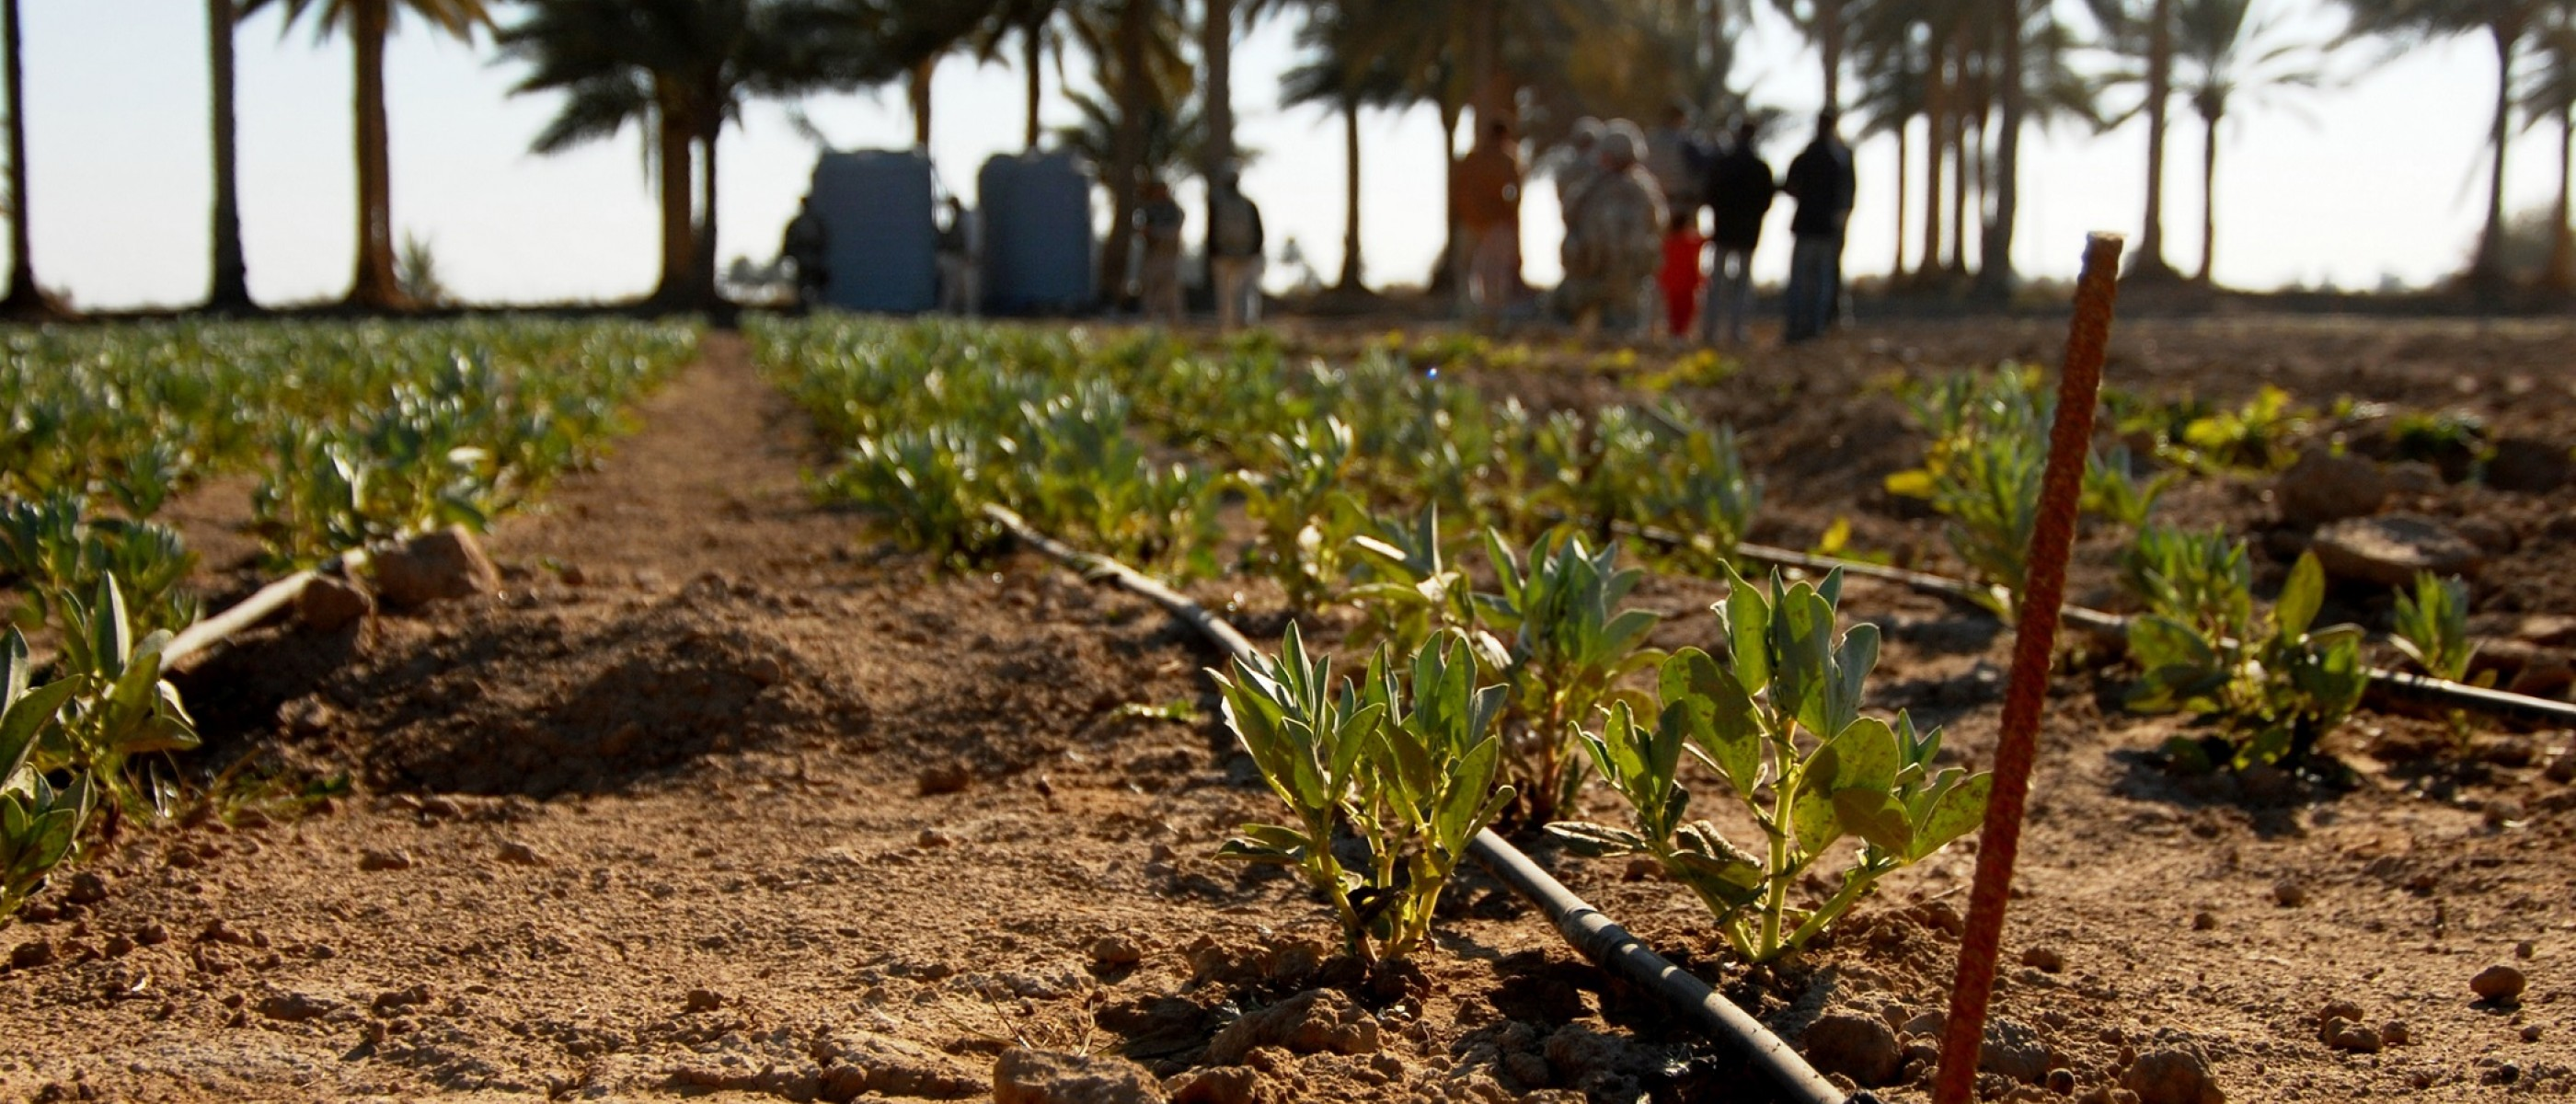 The Circular Crisis: Food Insecurity in the Middle East's War Zones